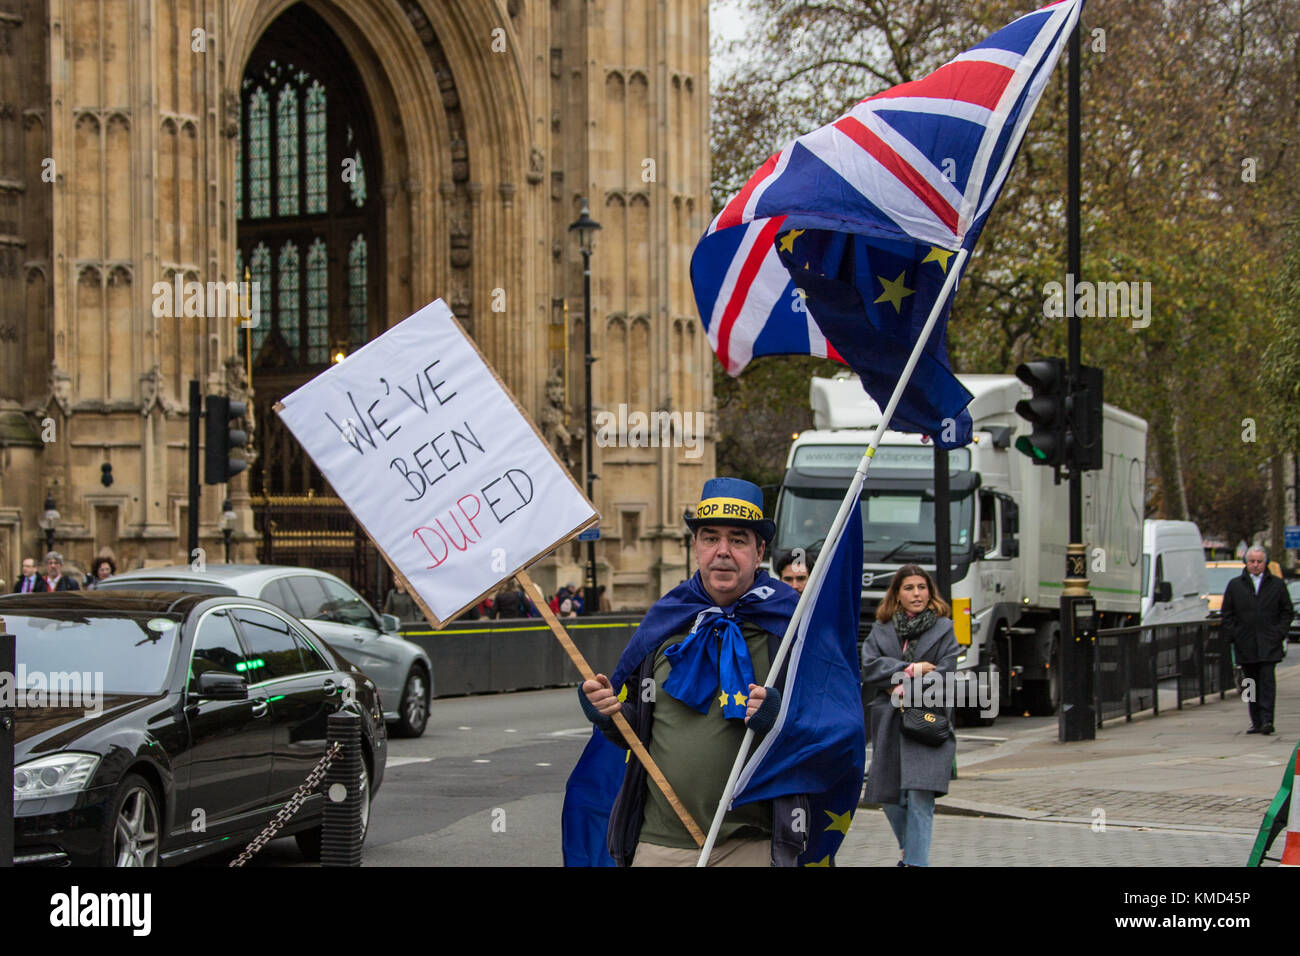 """London, UK. 6 December 2017.  """"We've been DUPed' Protester Stephen Bray wearing a Stop Brexit hat, holds a placard Stock Photo"""